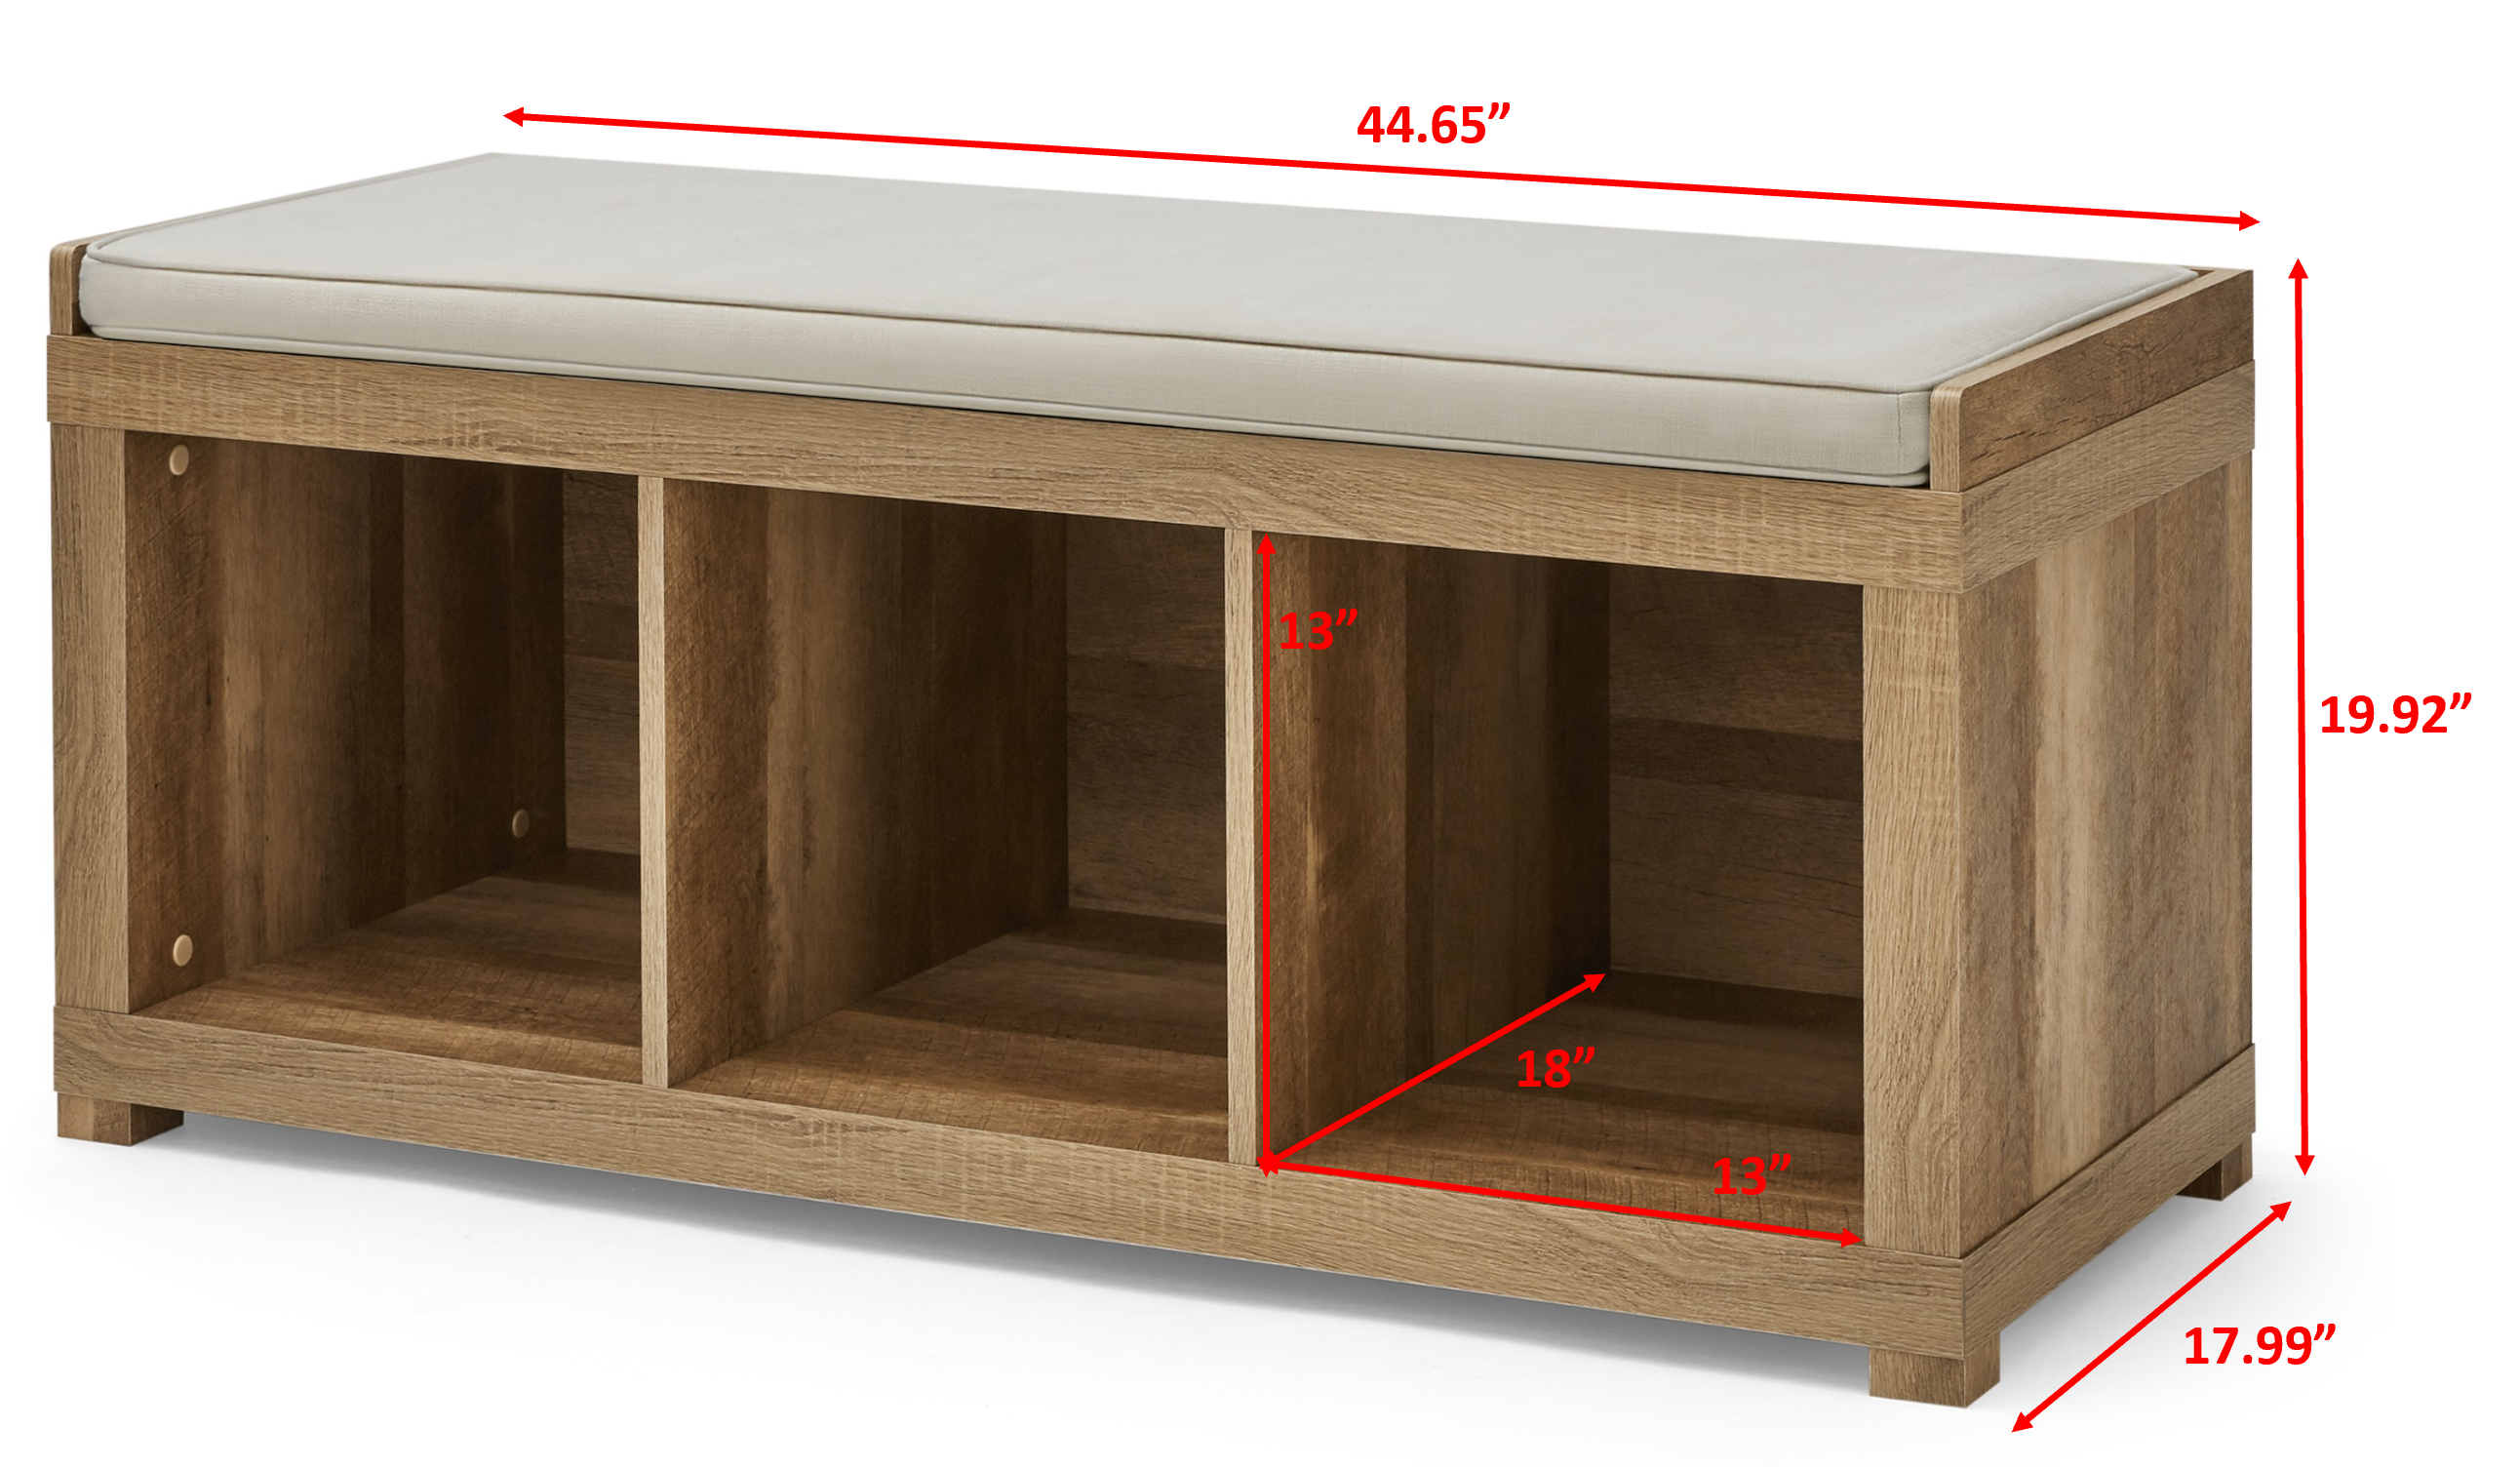 35186544c4dd2012d8bea144cb5b46b0 - Better Homes And Gardens Diy Bench Seat With Storage